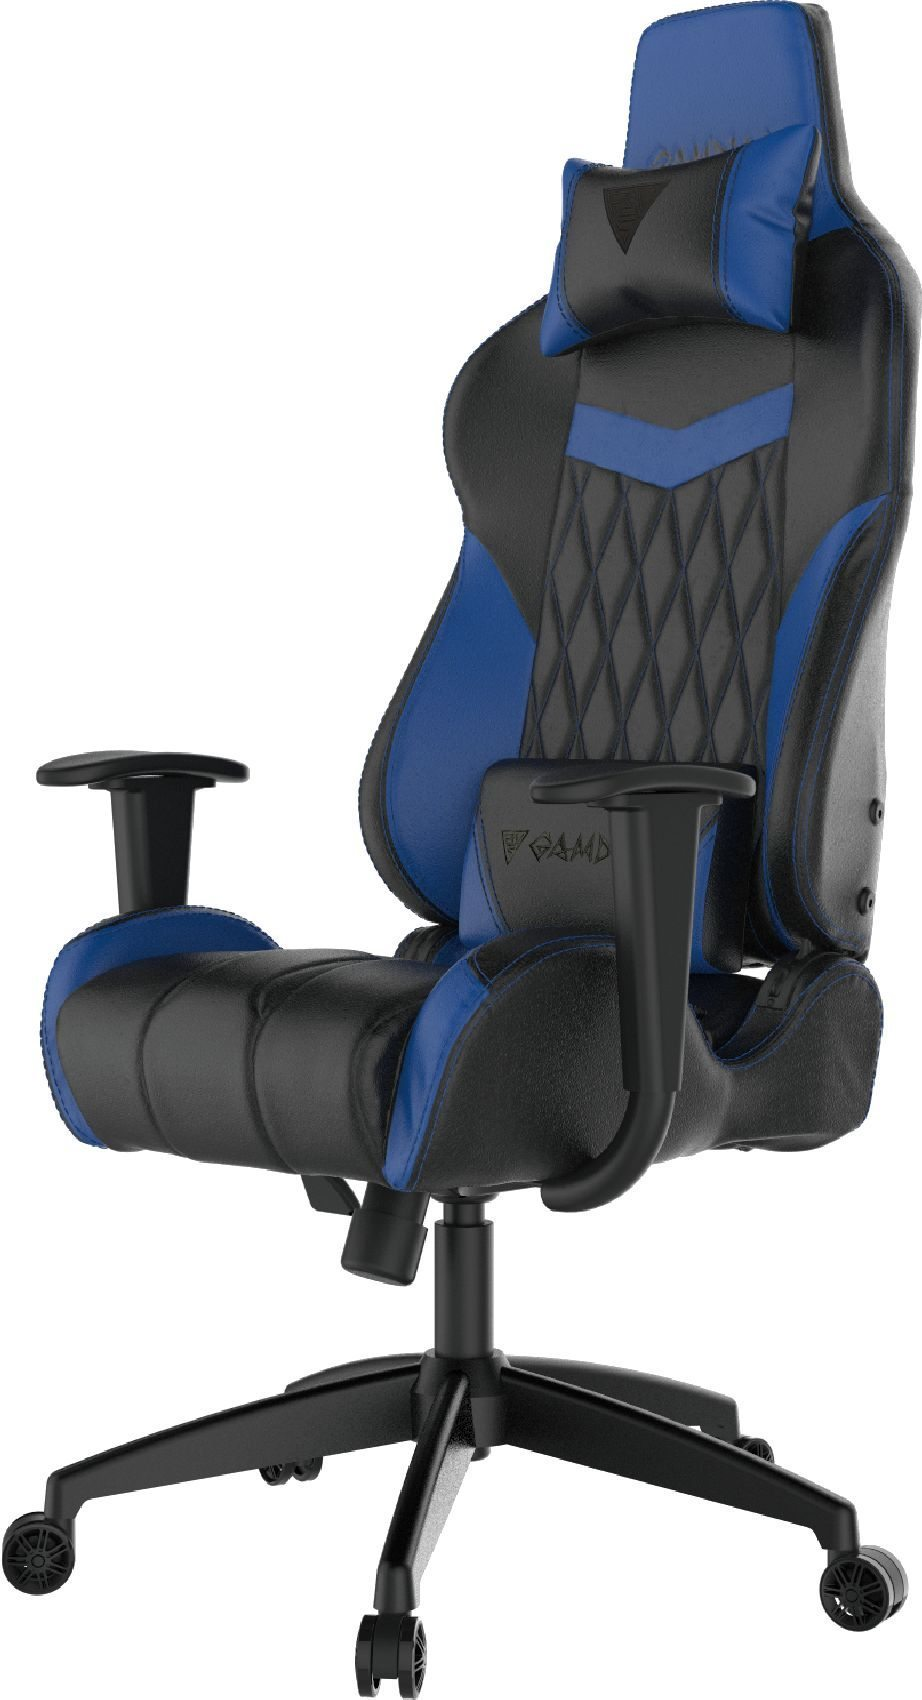 Gaming Chair - ACHILLES E2-L Blue